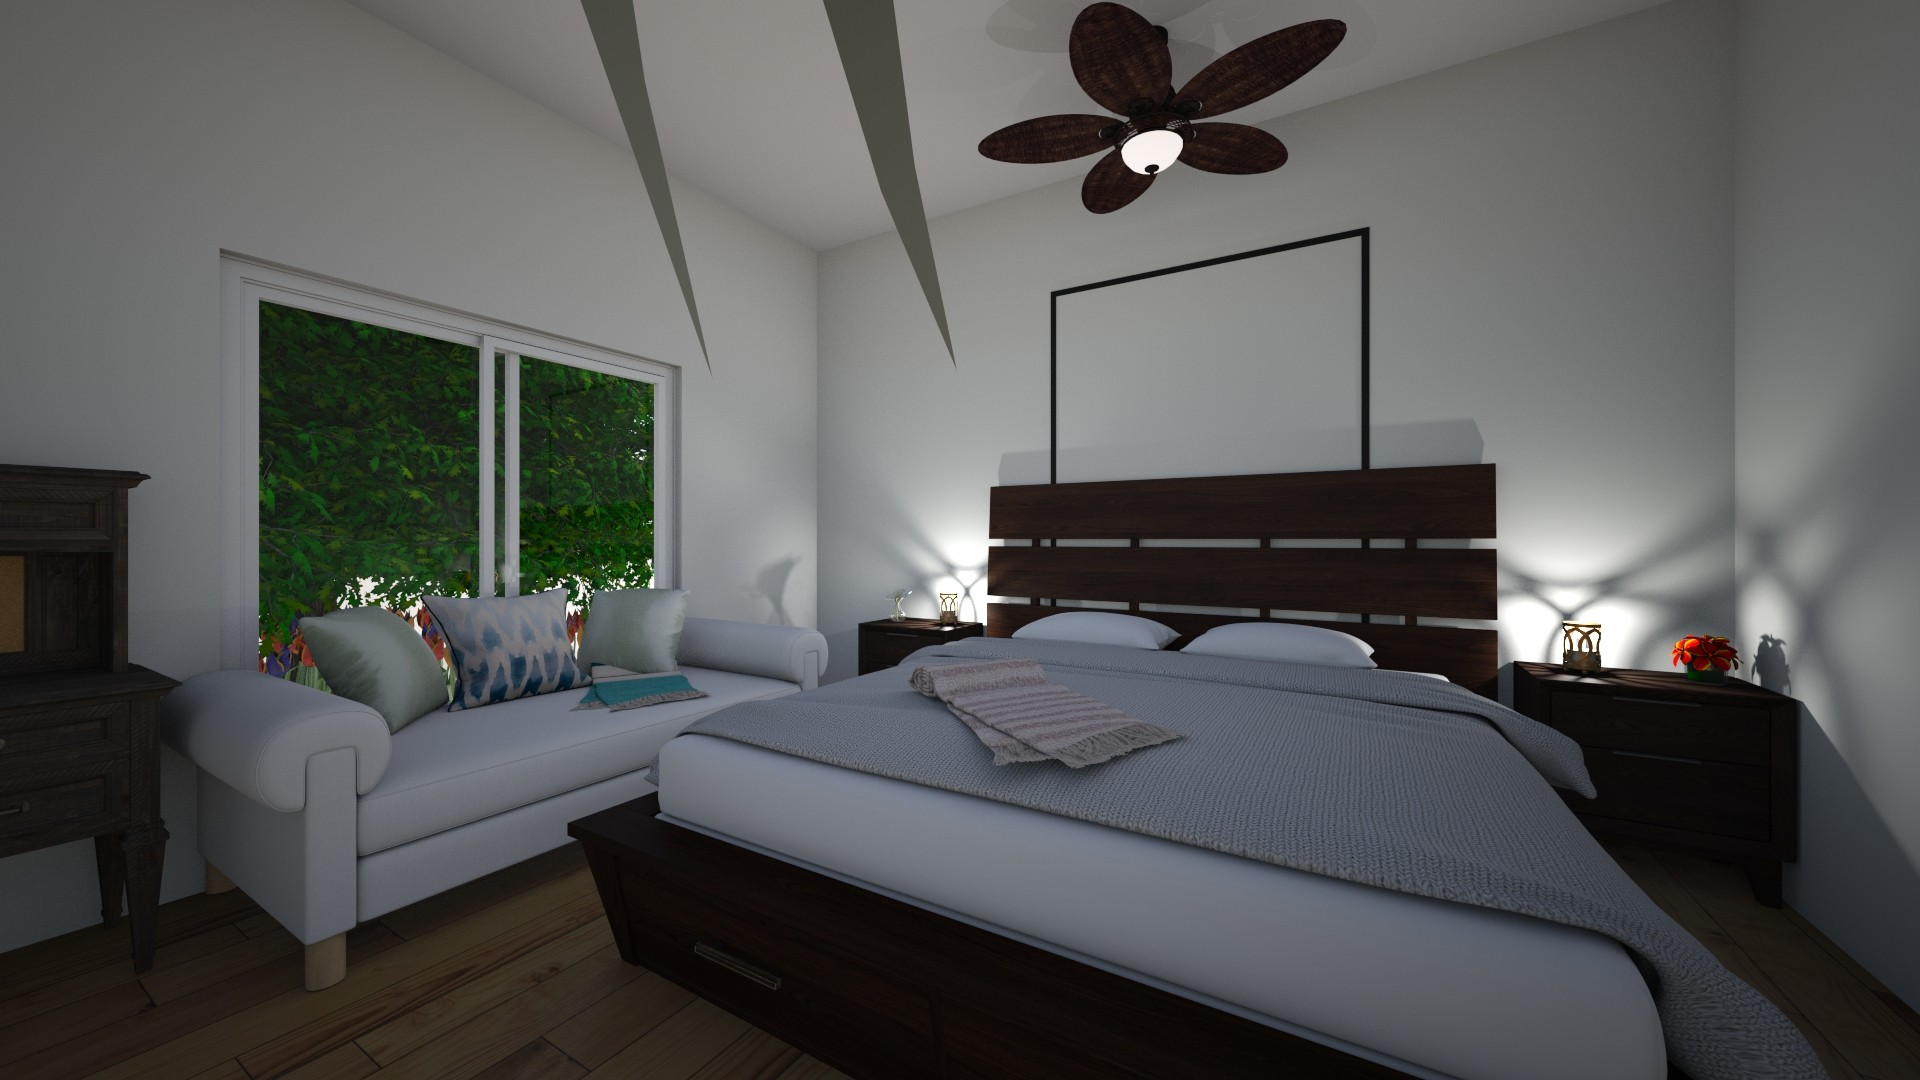 Room 4 - Bedroom - by Piper_M